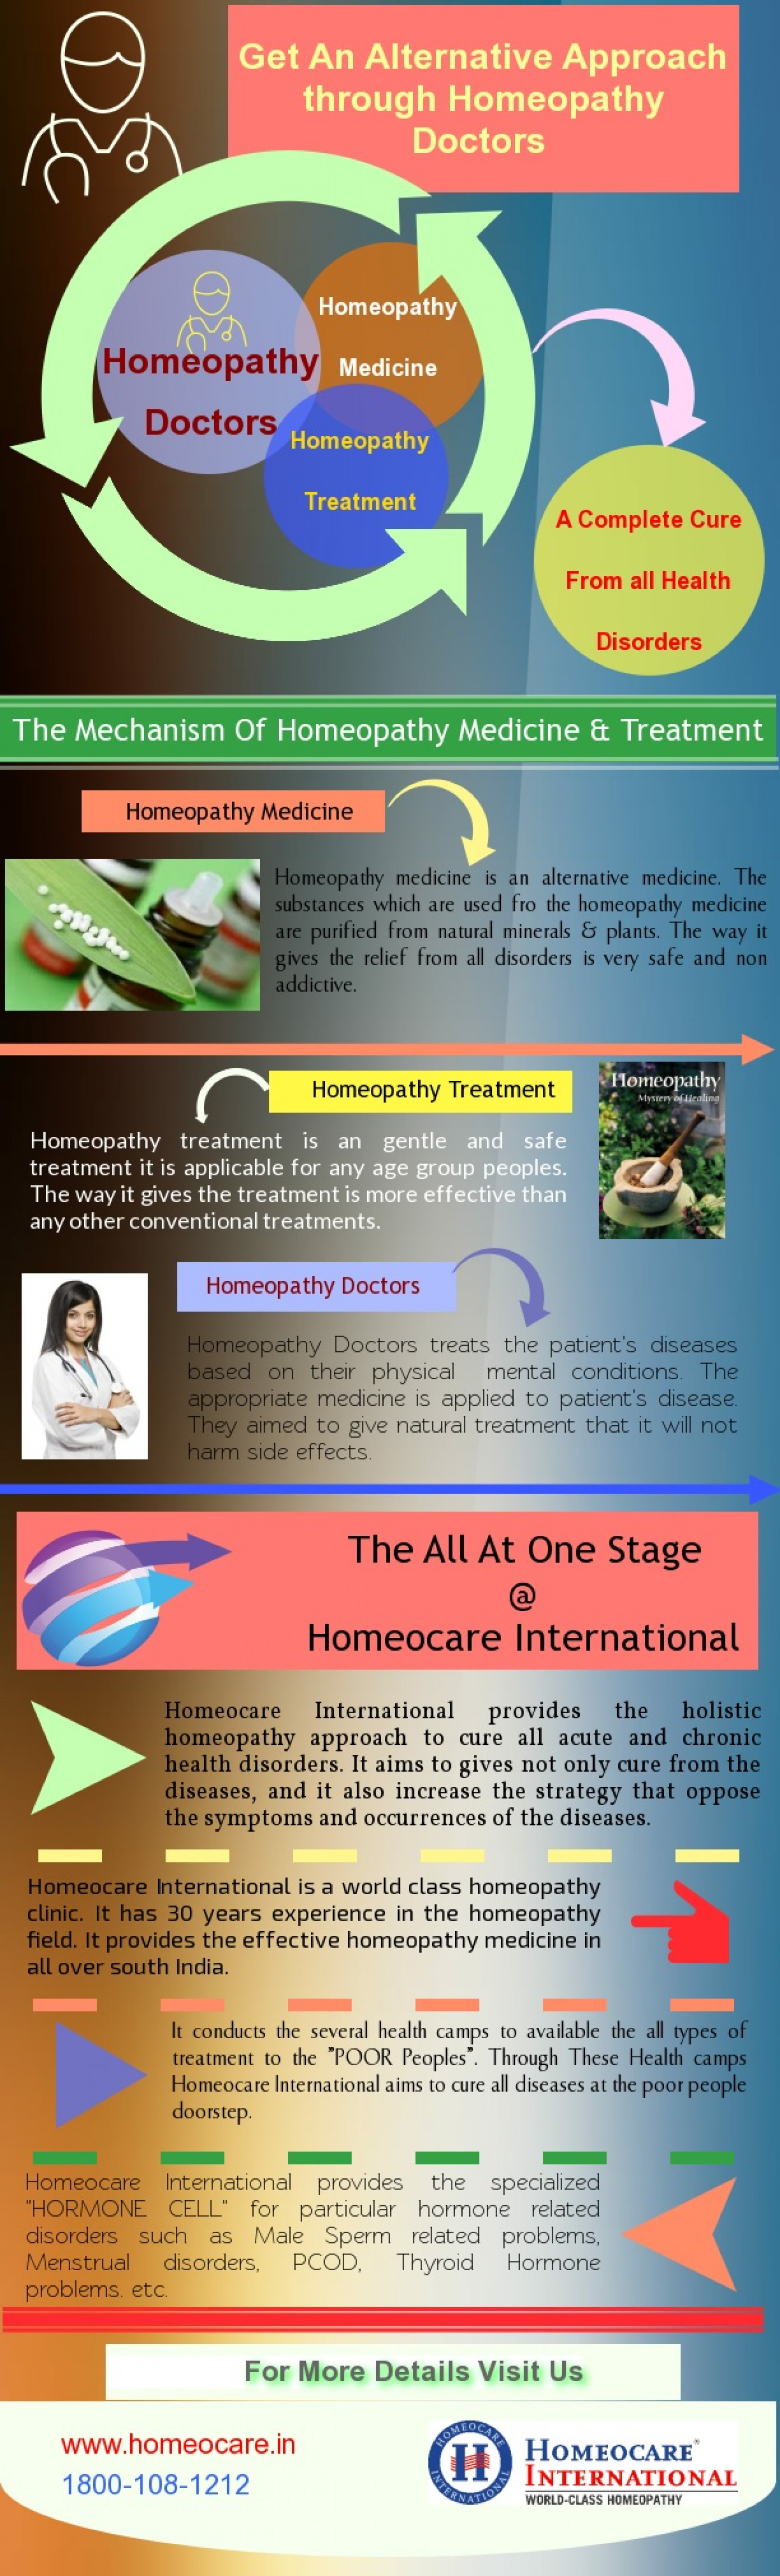 Get An Alternative Approach Through Homeopathy Doctors  Infographic